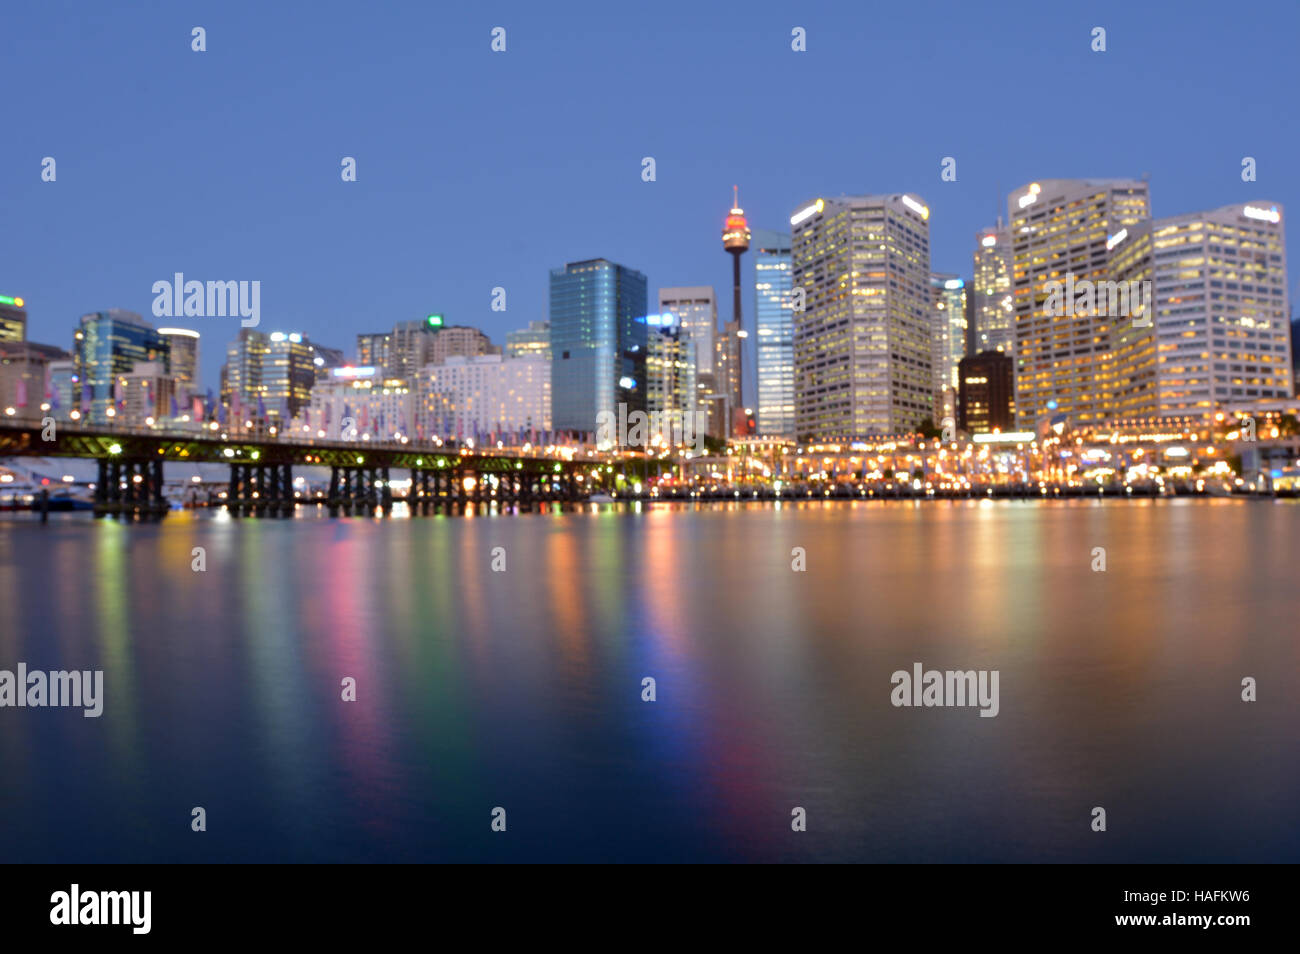 Blurry background of Darling Harbour at dusk in Sydney Australia. - Stock Image